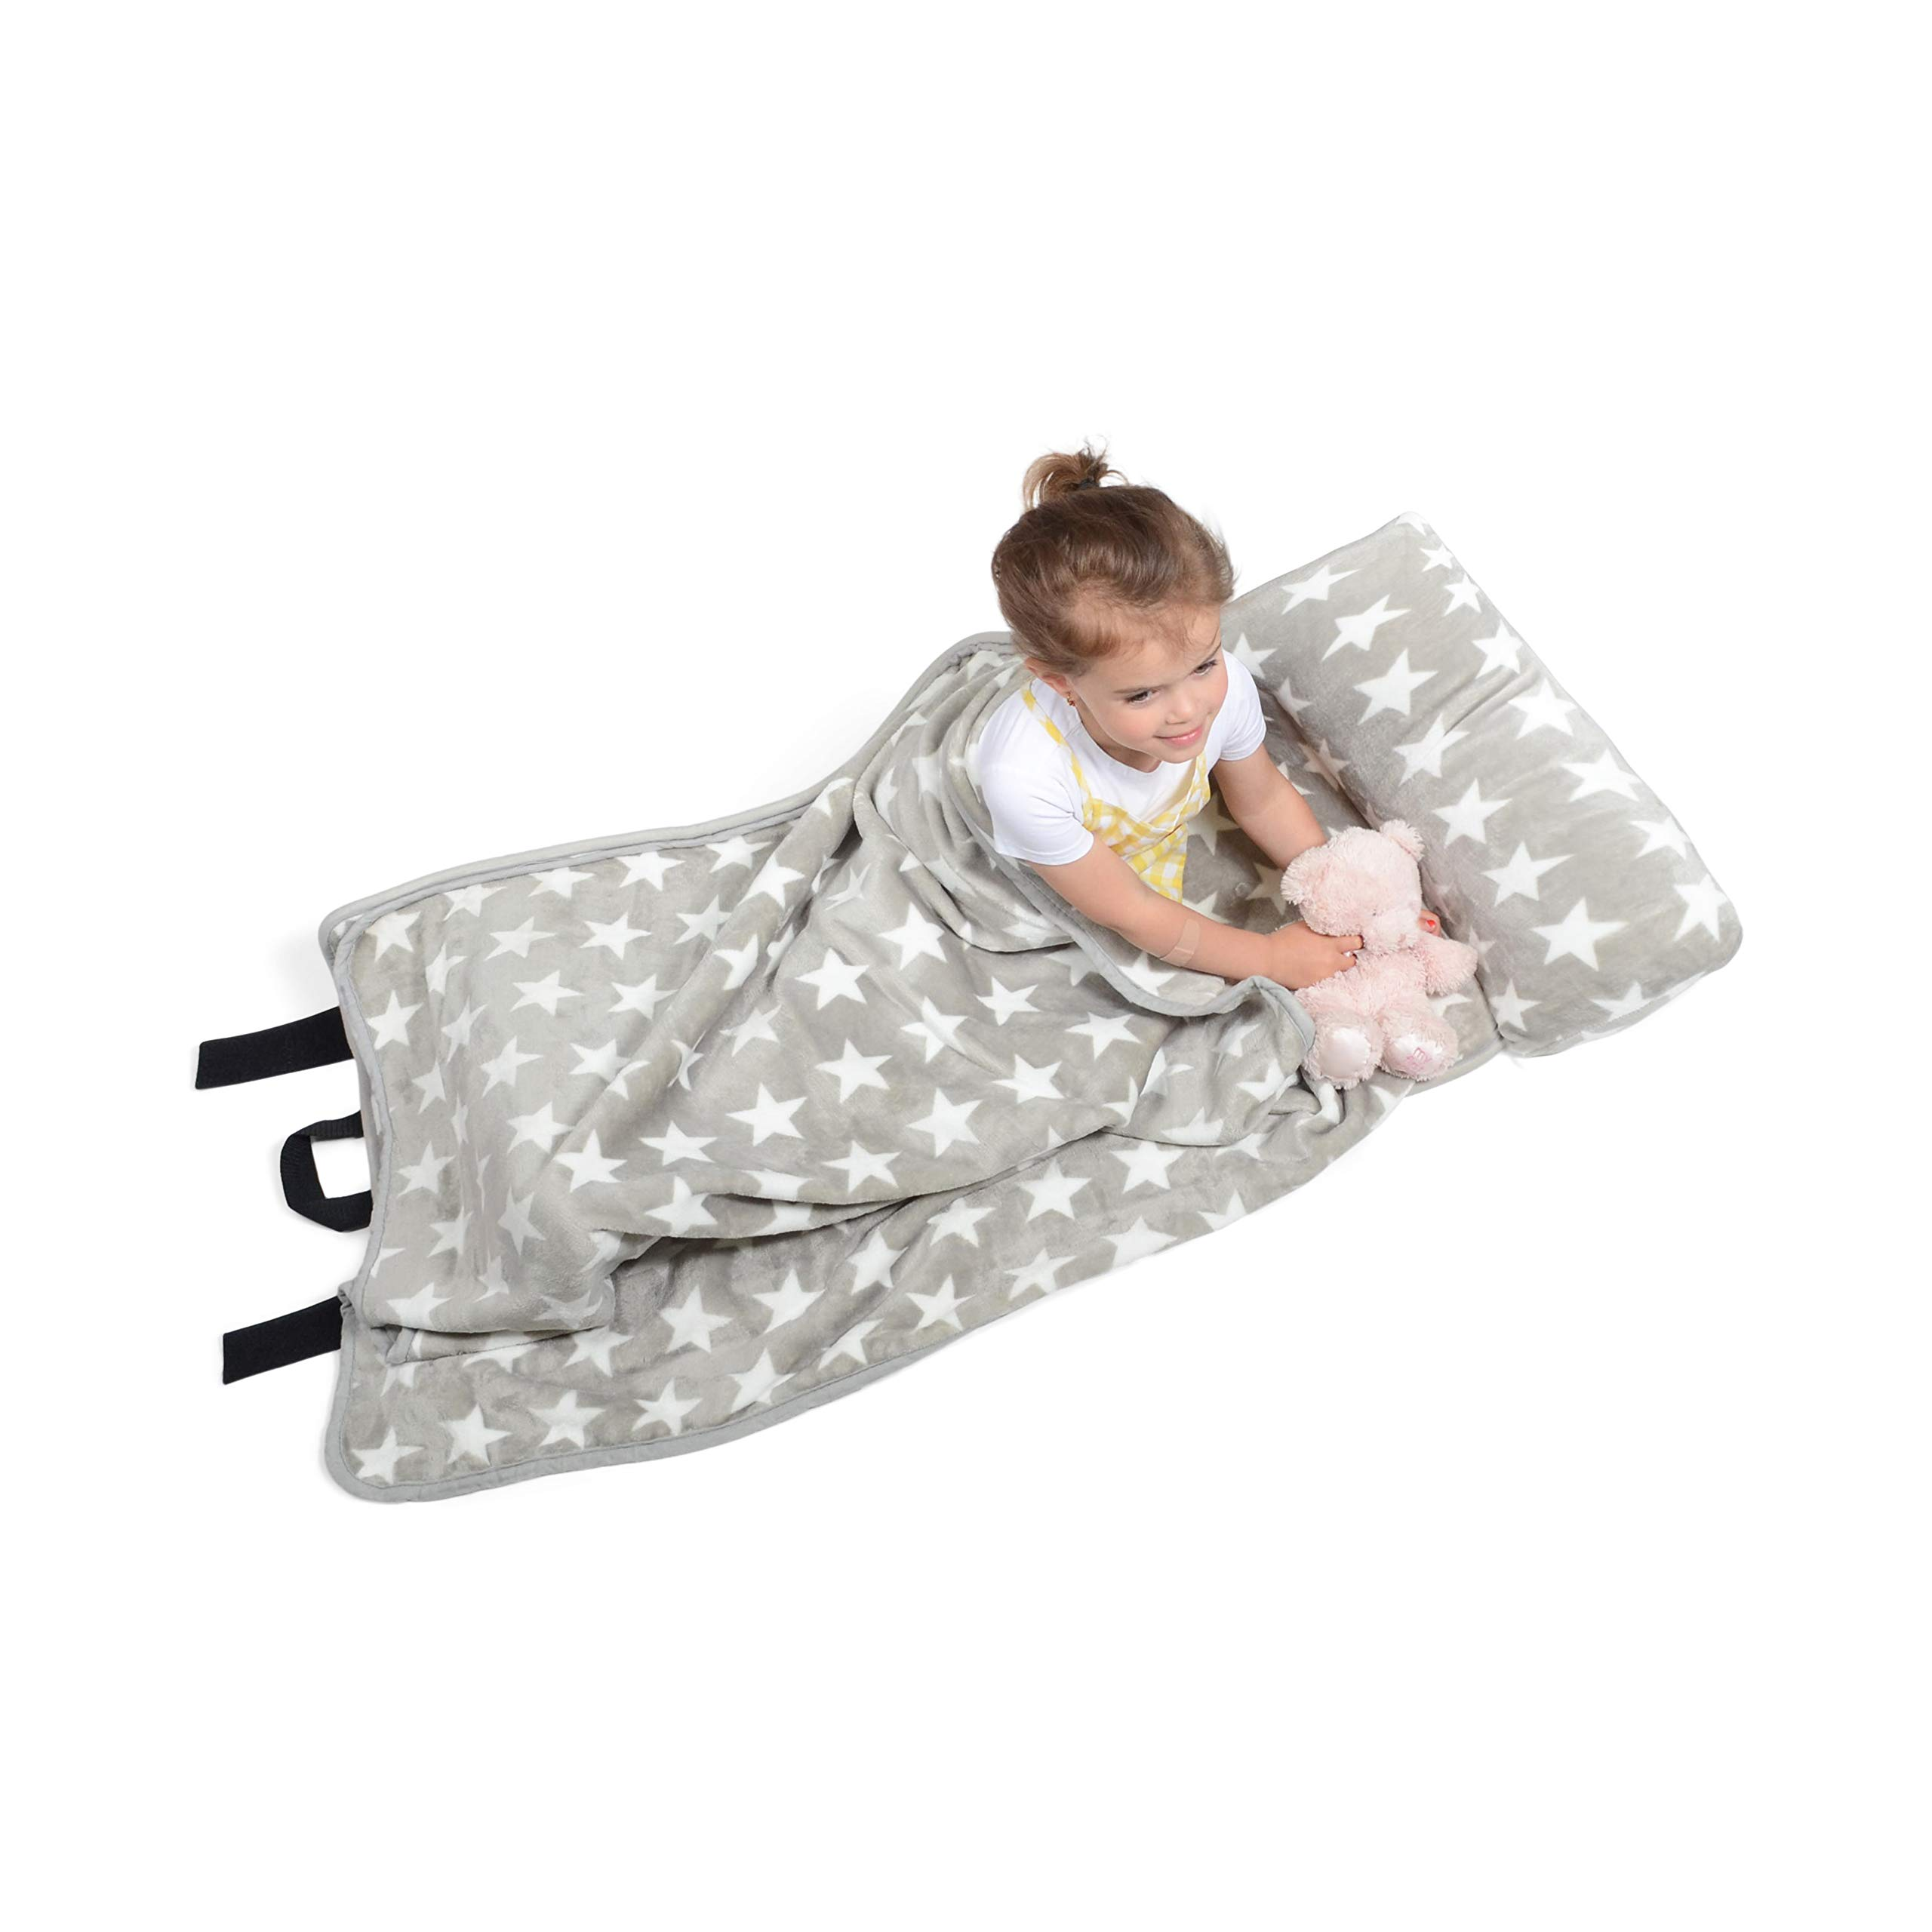 Milliard -Memory Foam- Nap Mat Roll Stars with Fuzzy Blanket and Removable Pillow, Machine Washing for Toddler Daycare Preschool Kindergarten and Sleepovers by Milliard (Image #9)